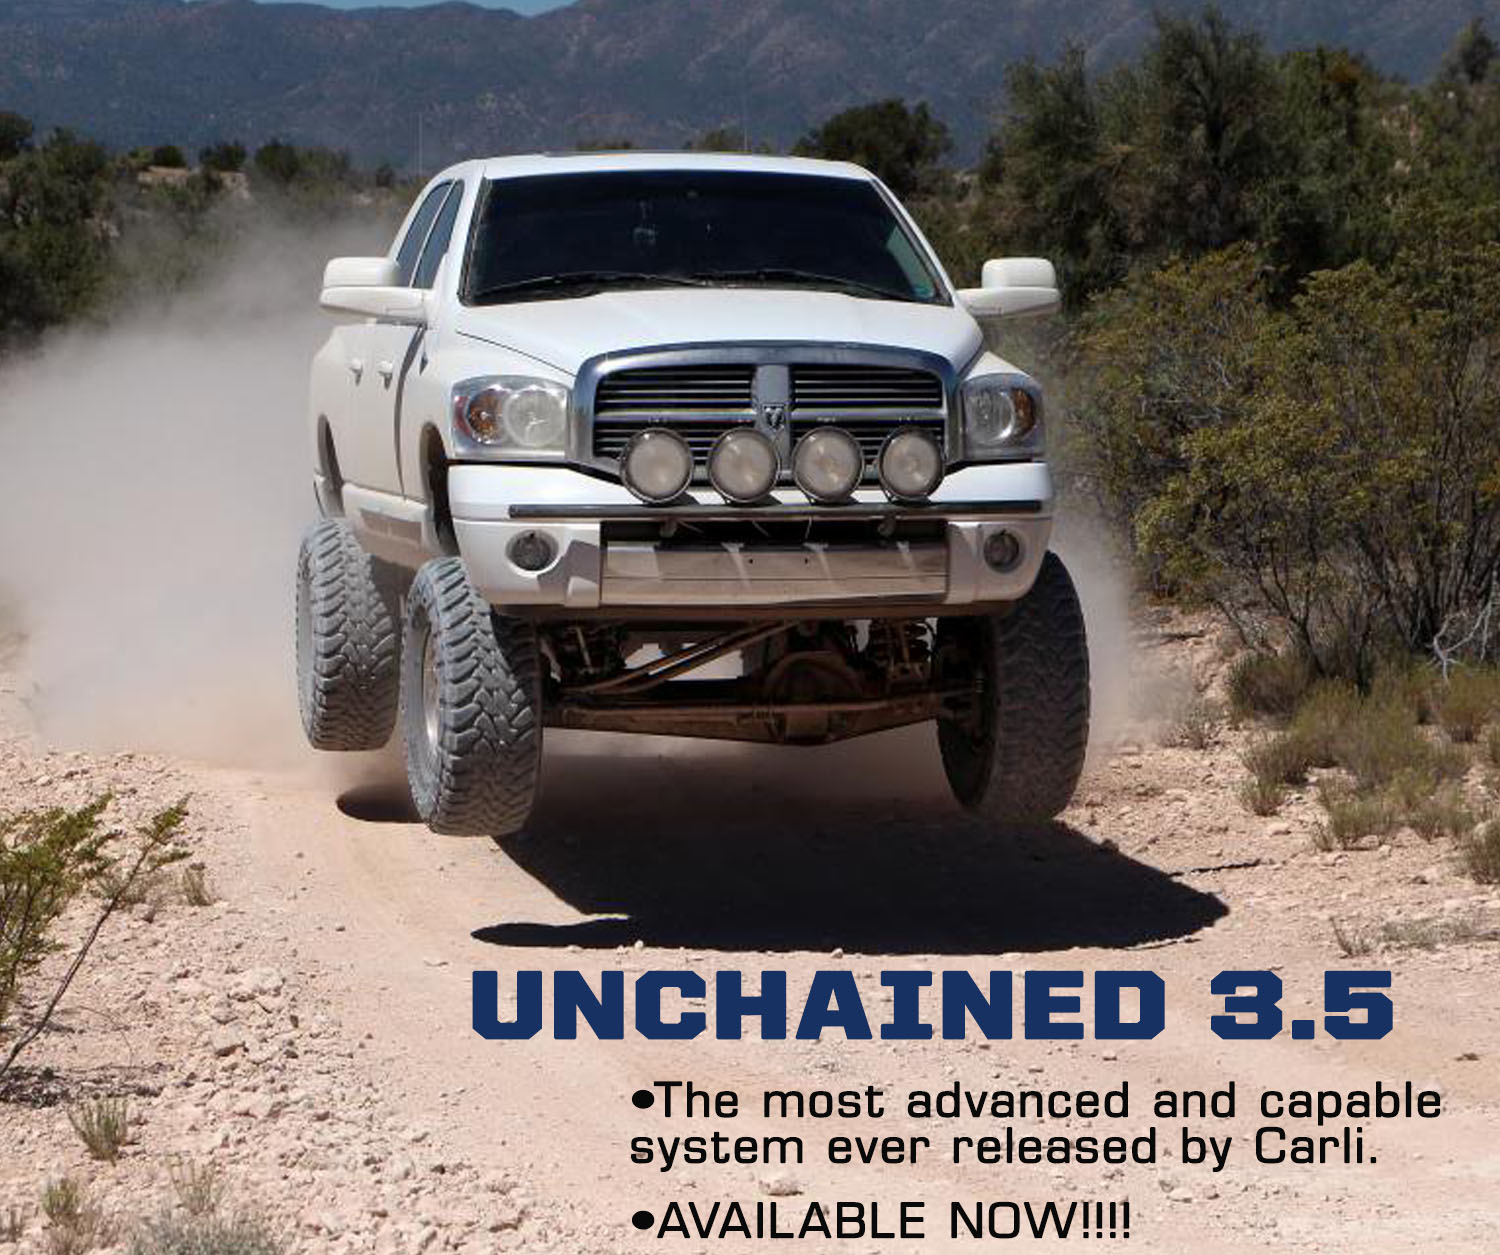 Carli Unchained 3 5 System